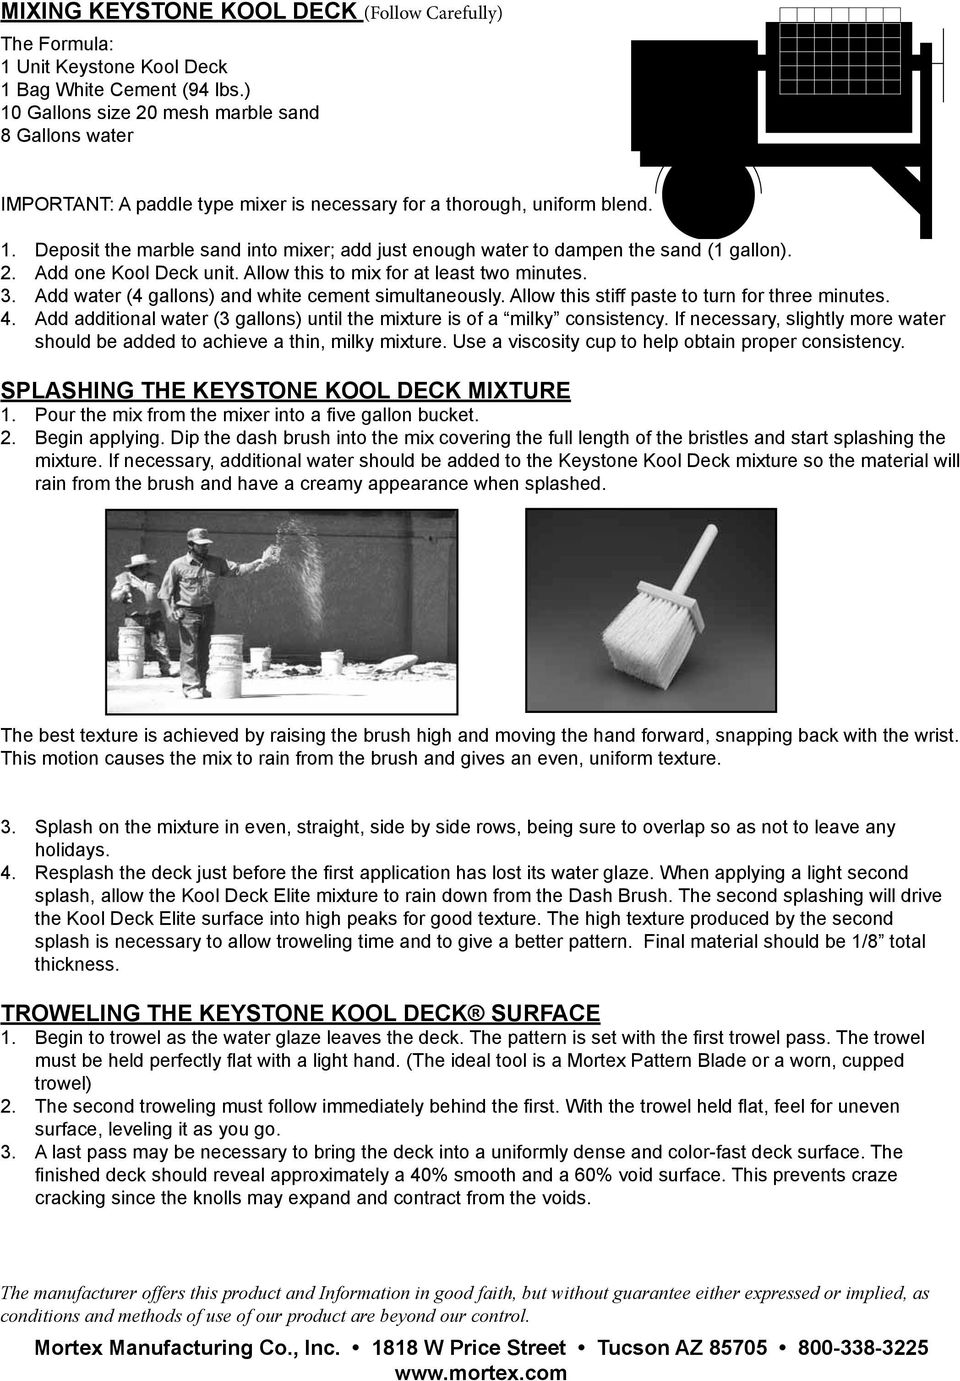 Application Instructions For Keystone Kool Deck On Existing Concrete